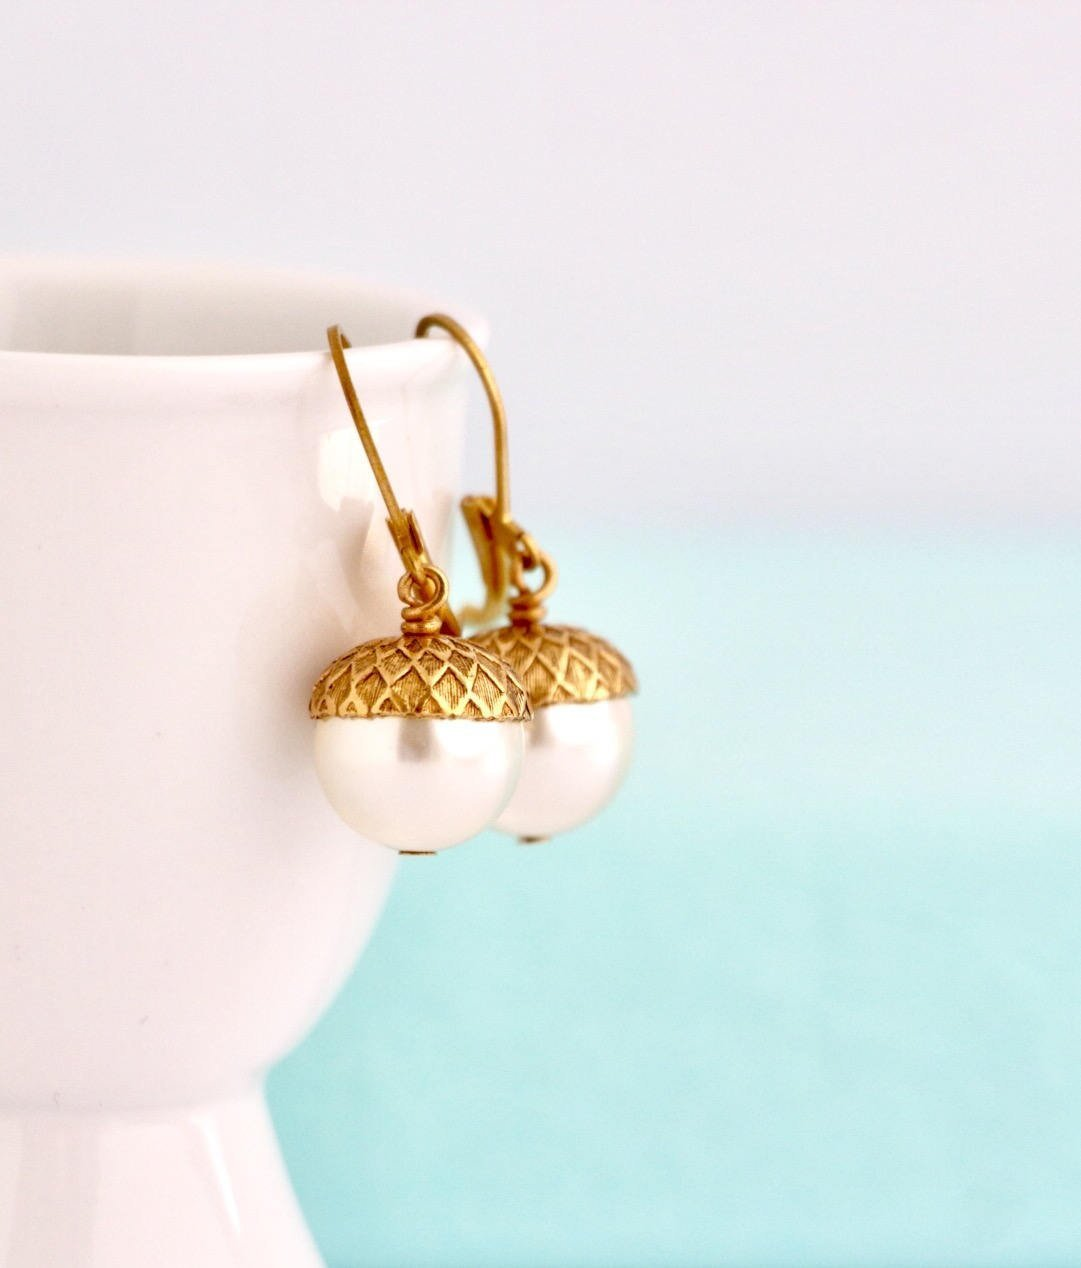 Acorn Dangle Earrings Ivory Simulated Pearl Lever-back Ear Wires